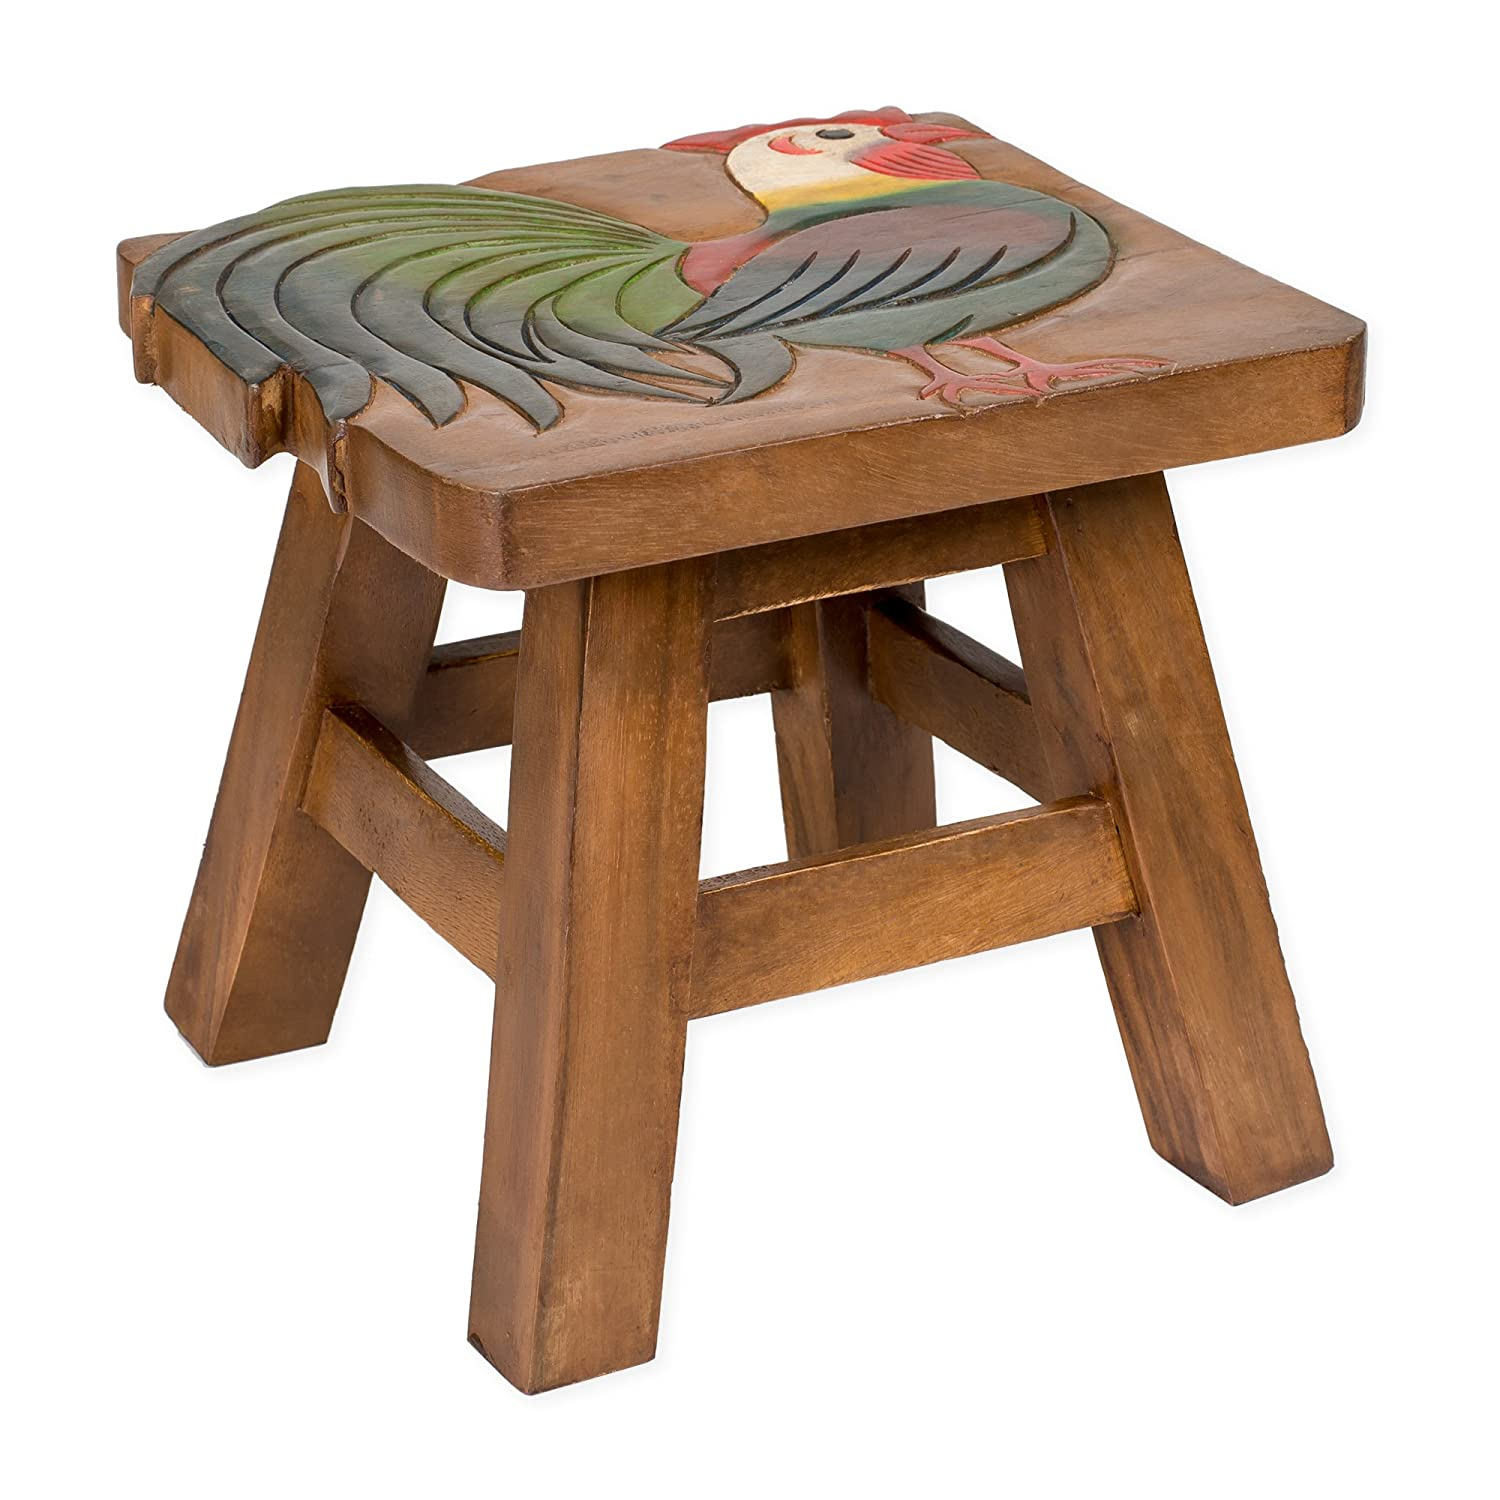 Rooster Design Hand Carved Acacia Hardwood Decorative Short Stool Sea Island